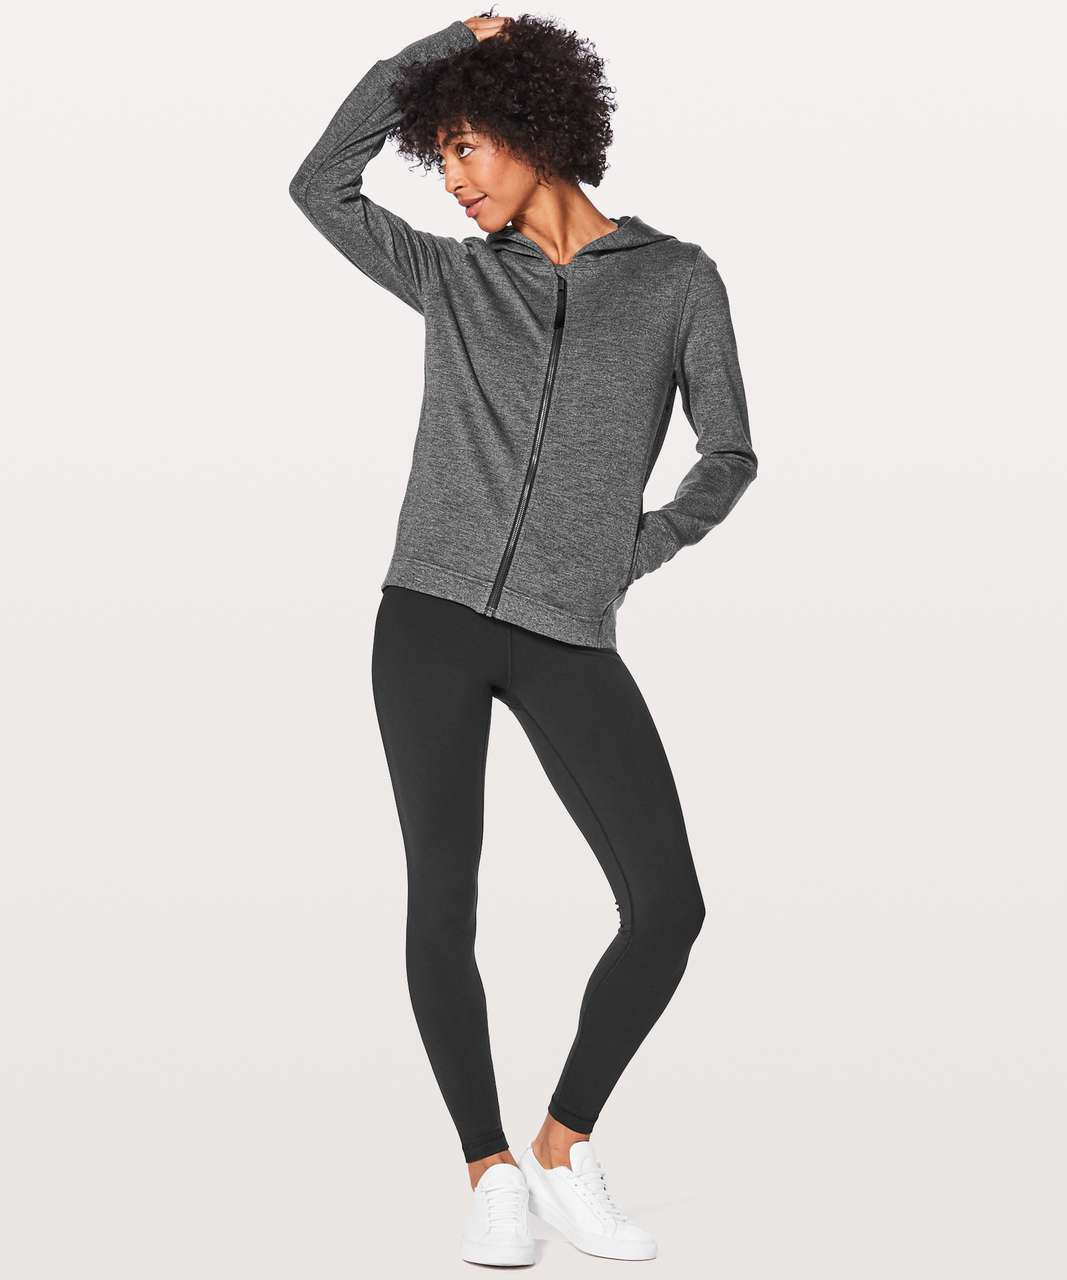 Lululemon City Trek Jacket - Heathered Black